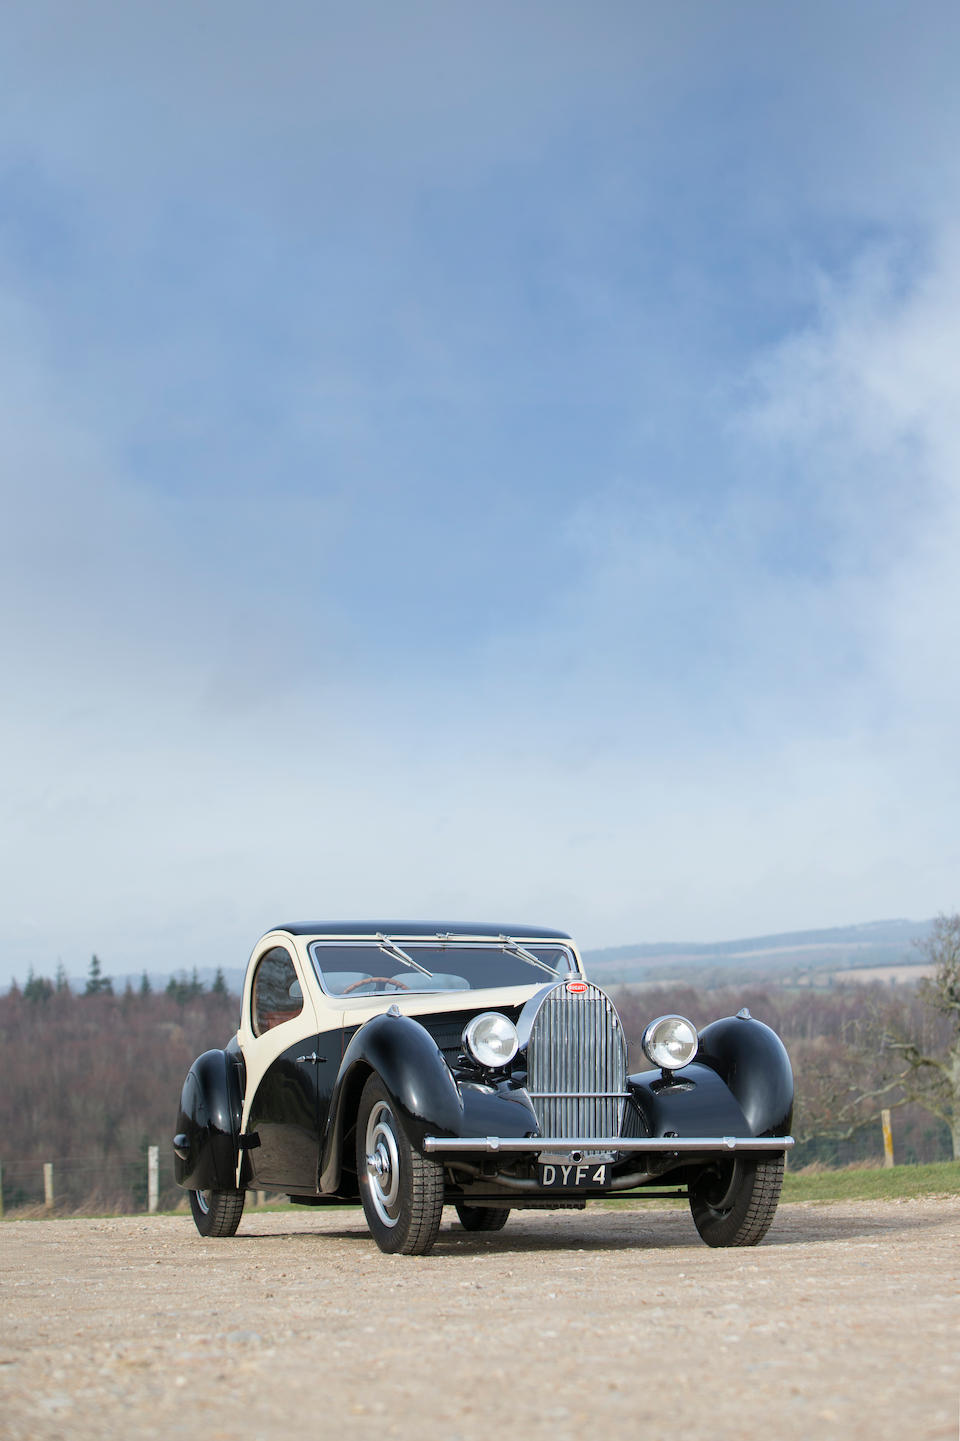 From the collection of the late Barry Burnett,1935 Bugatti Type 57 Atalante Faux Cabriolet  Chassis no. 57252